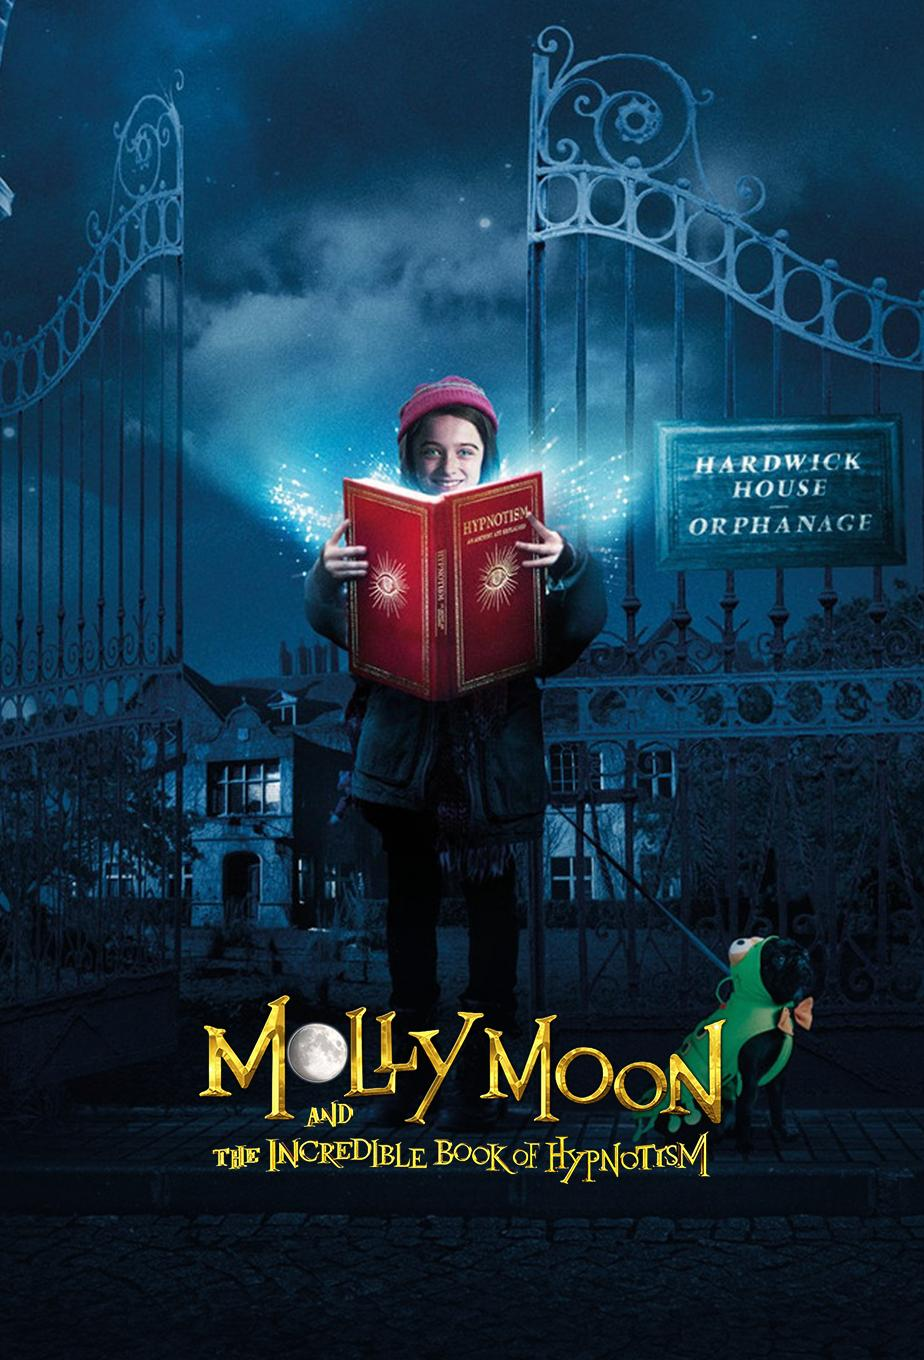 molly moon and the incredible book of hypnotism full movie english